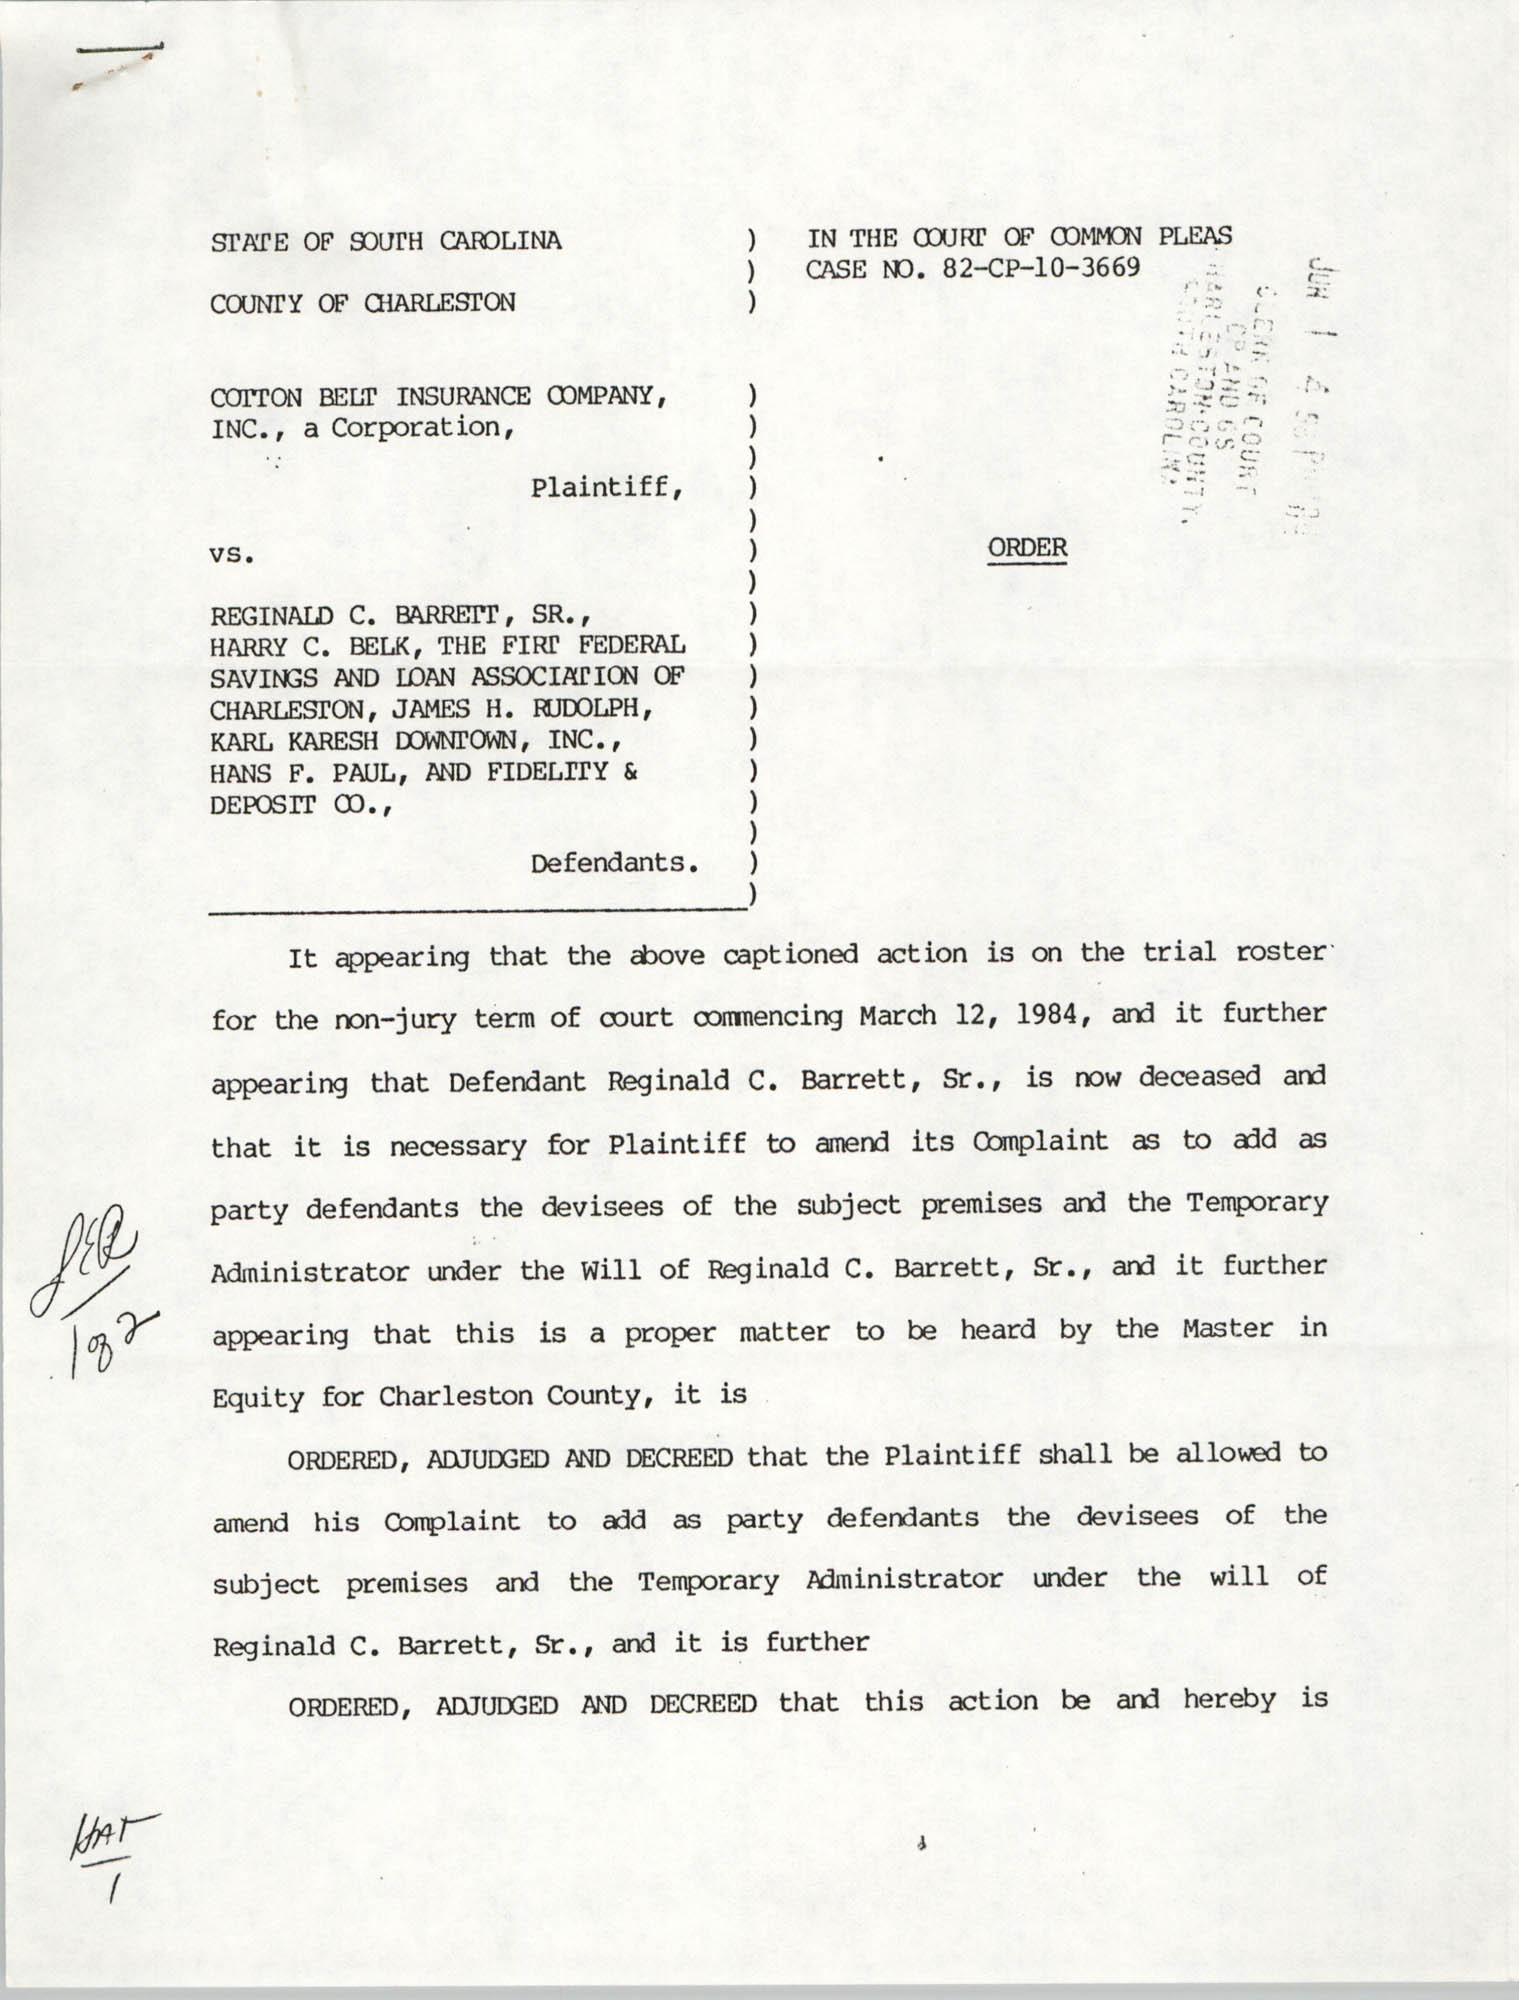 Order, State of South Carolina, County of Charleston, Cotton Belt Insurance Company vs. Reginald C. Barrett Sr., et al., June 1, 1984